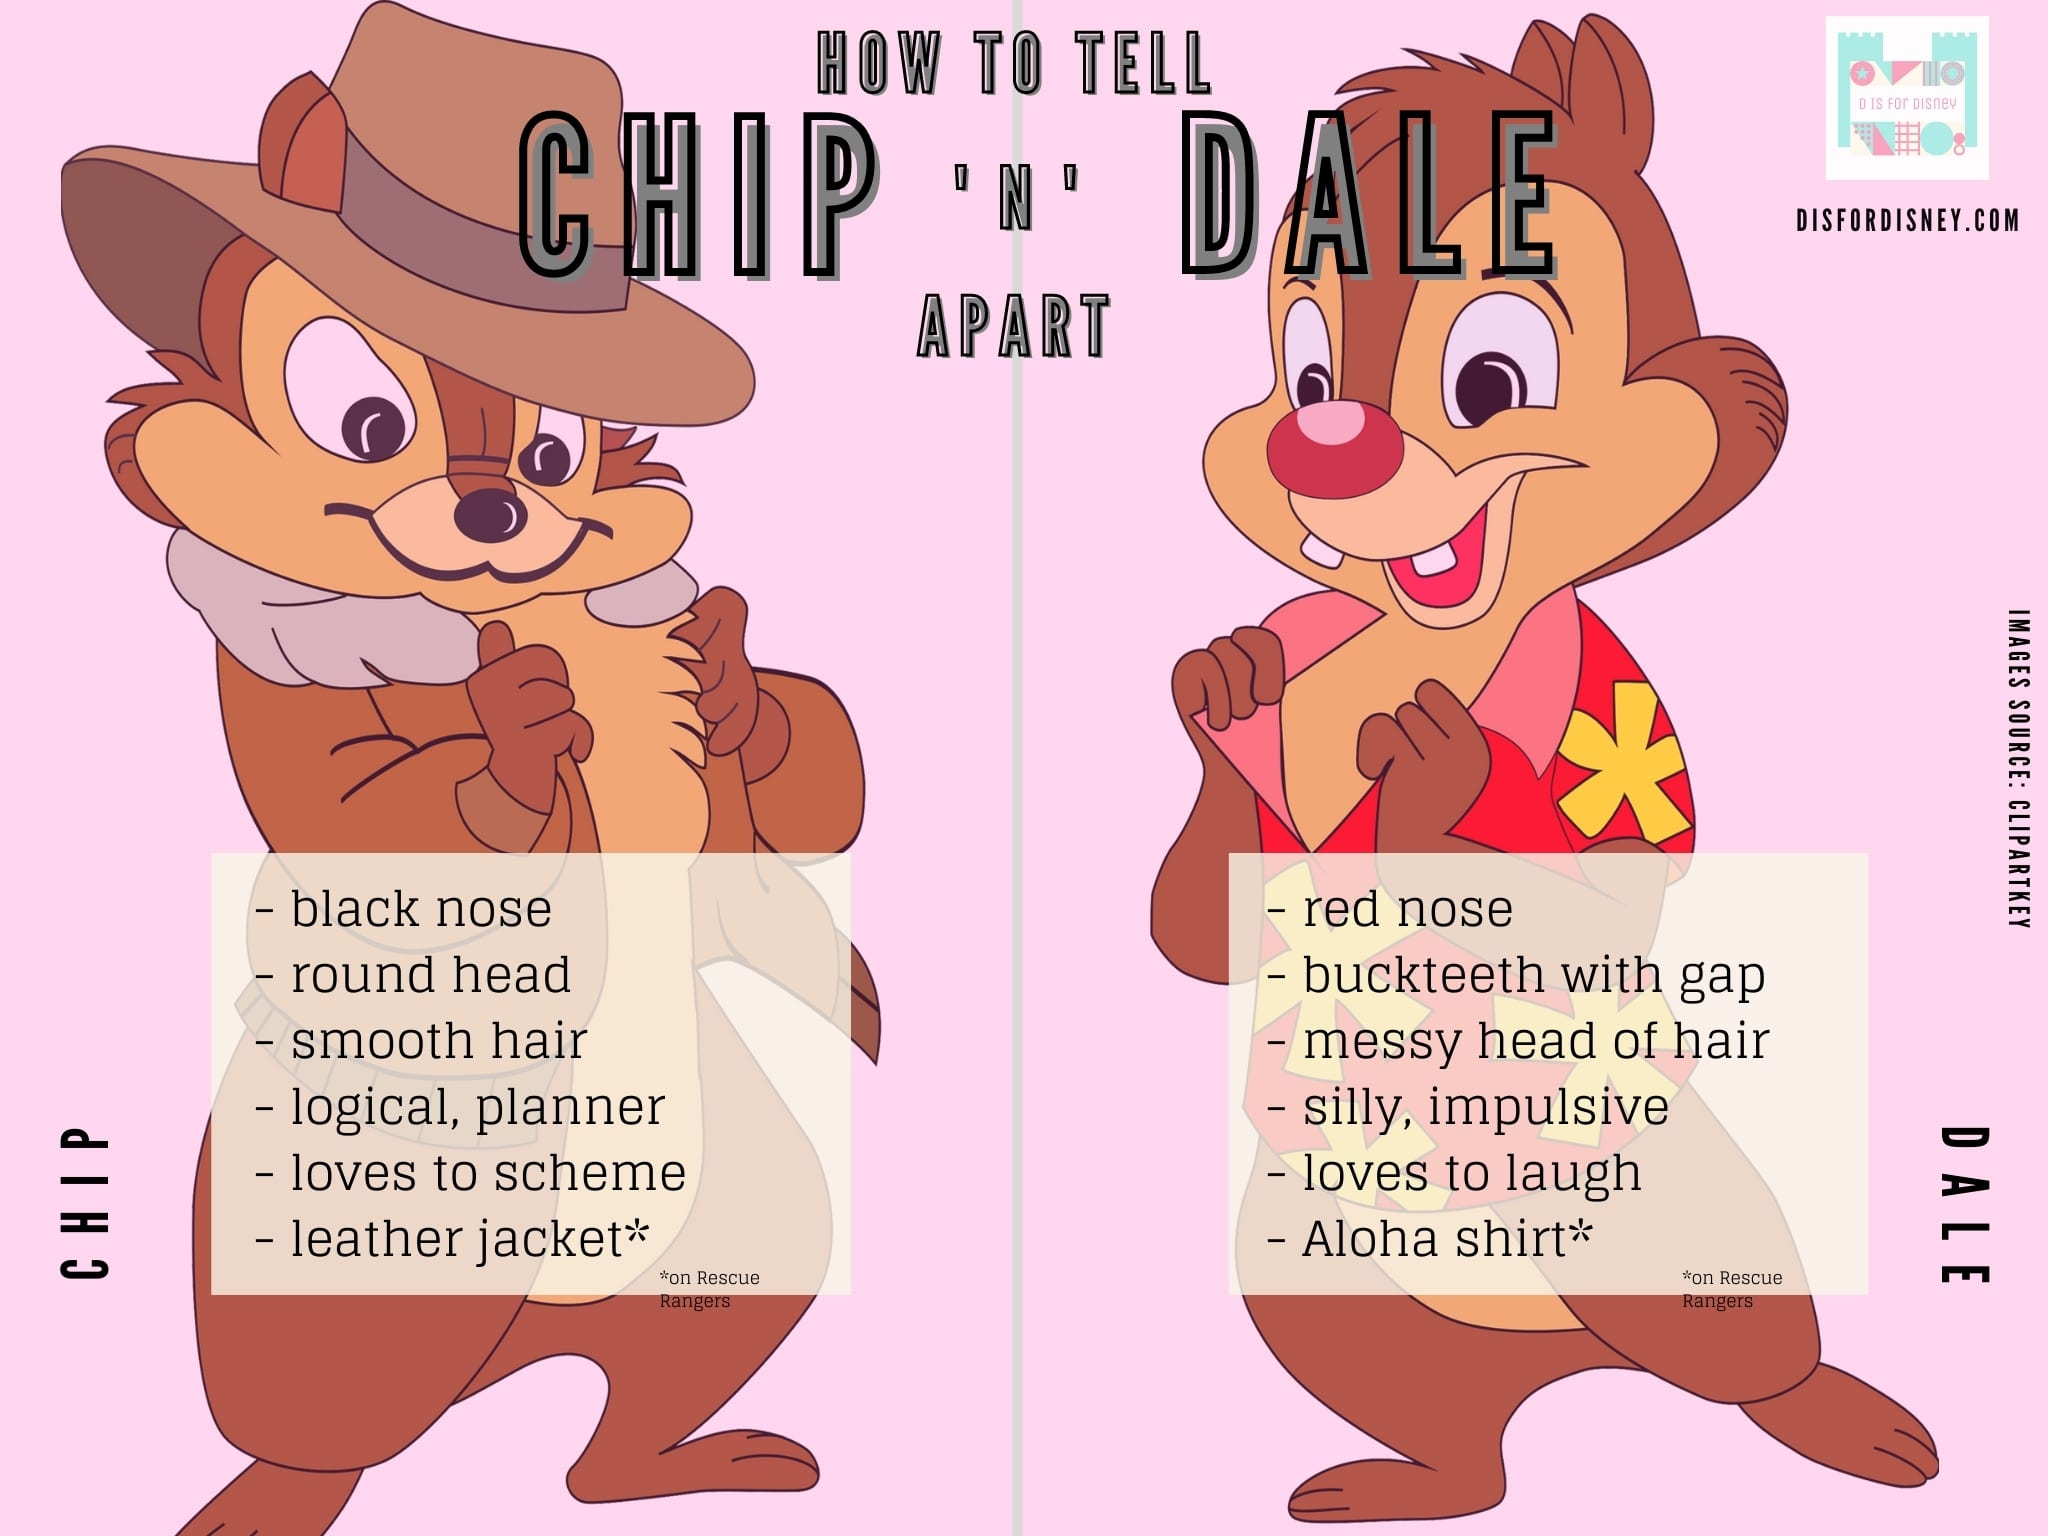 How to Tell Chip and Dale Apart